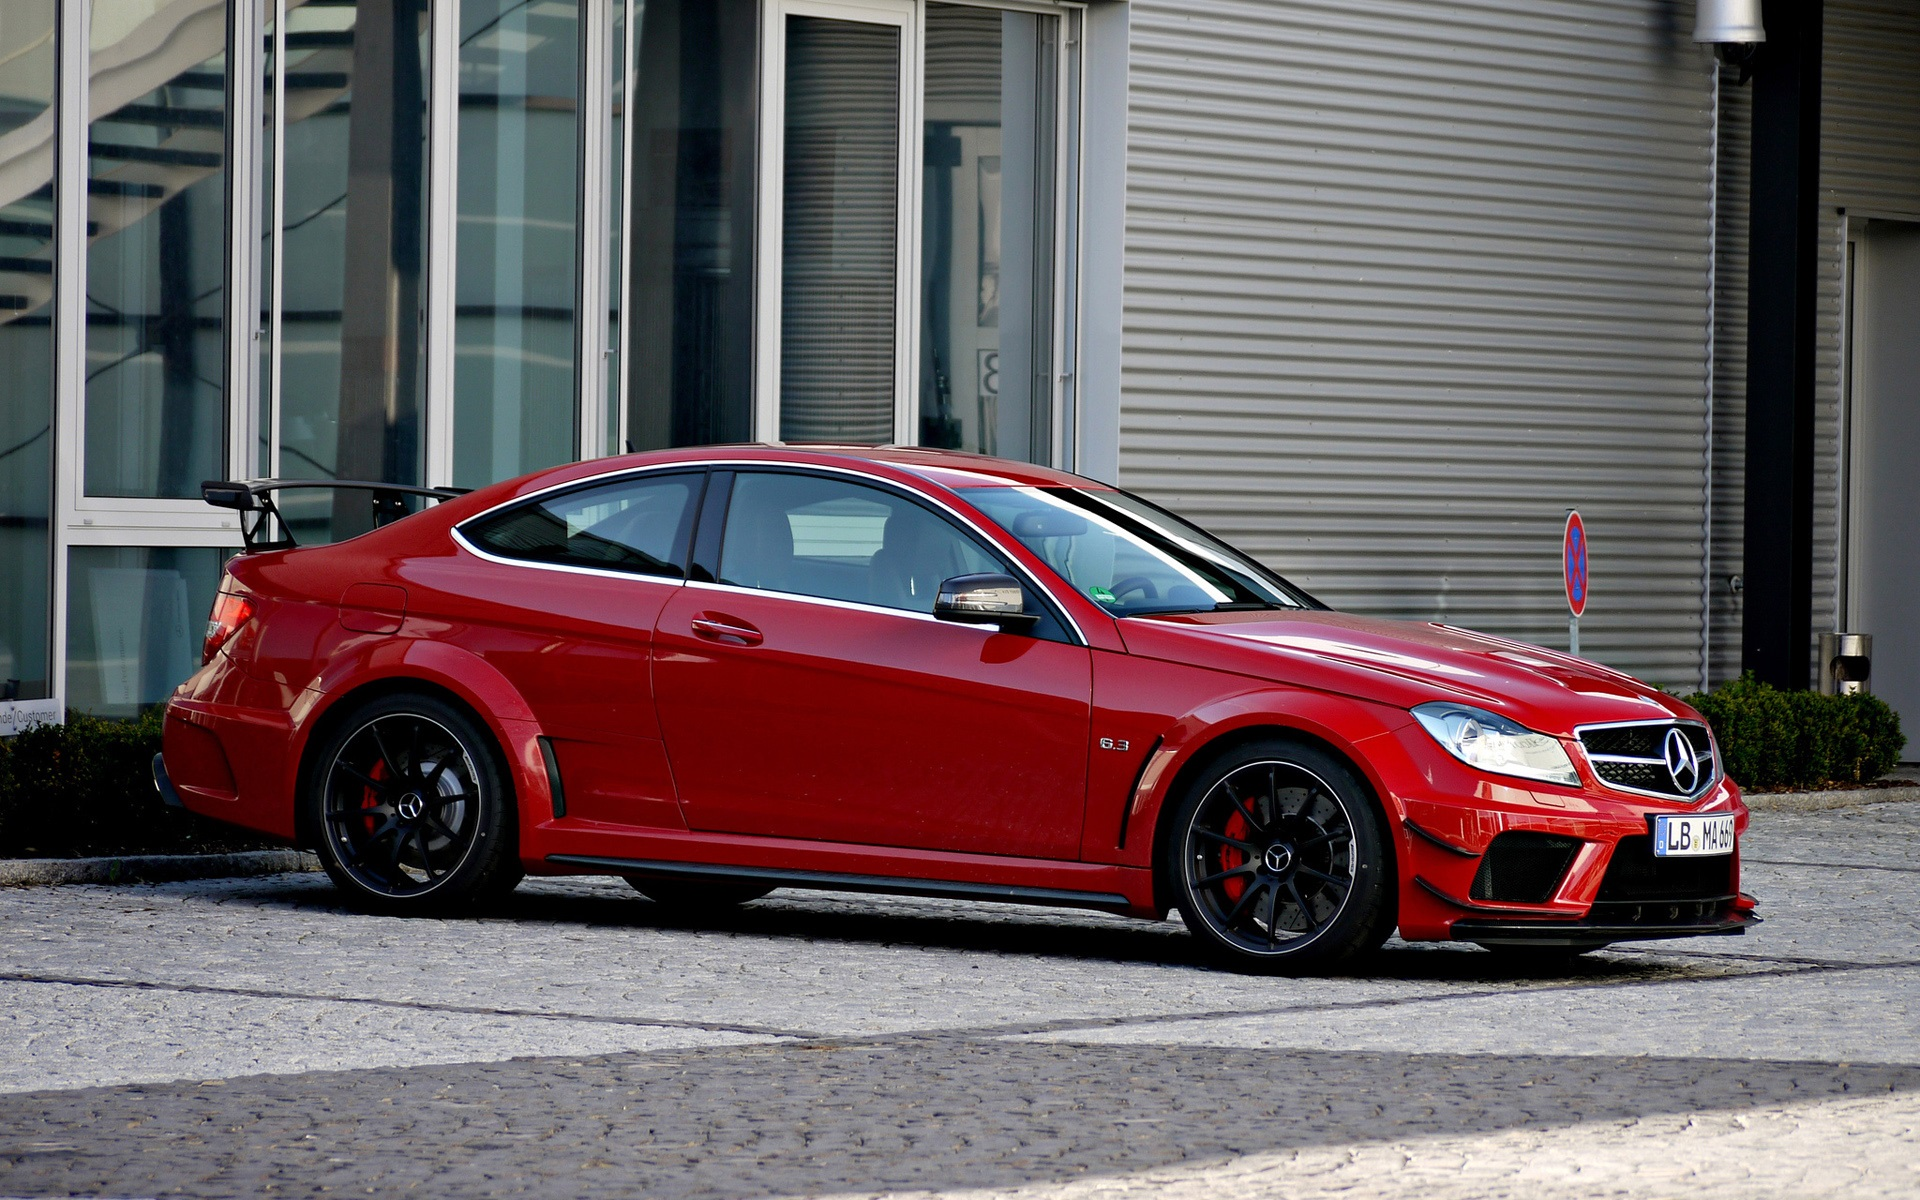 Download wallpaper 1920x1200 red mercedes benz c63 amg for Mercedes benz christmas commercial